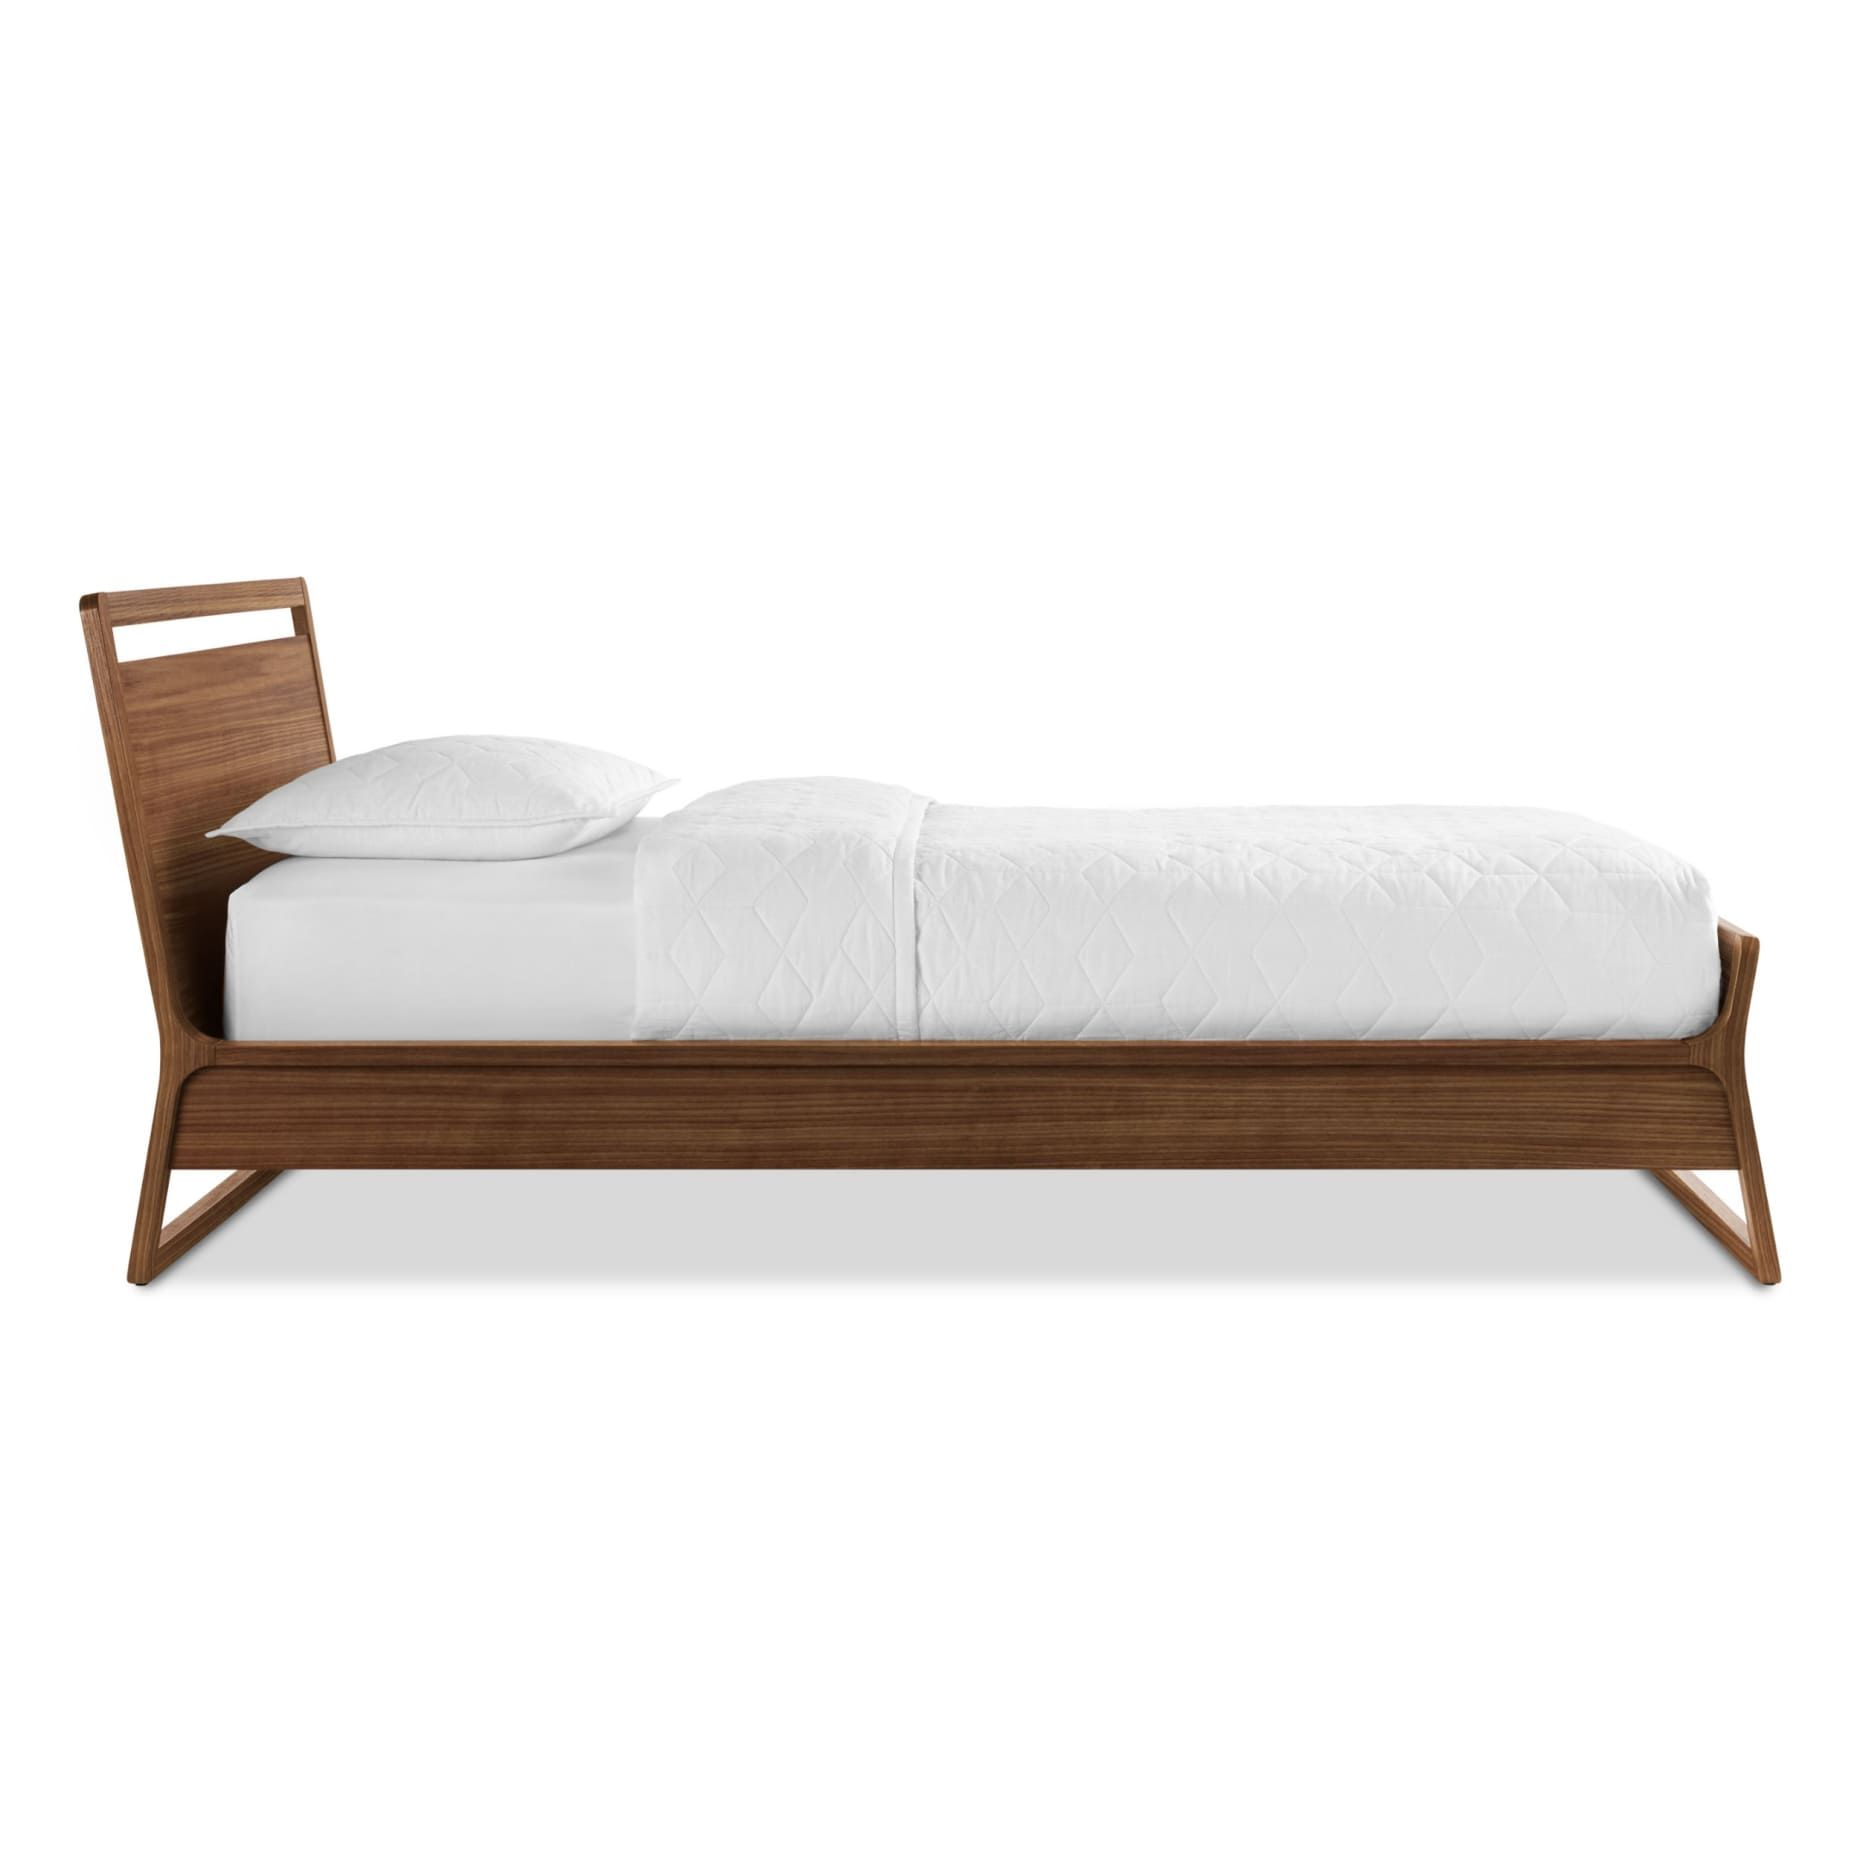 Woodrow Twin Bed Bed Linens Luxury Modern Wood Bed Bed Linen